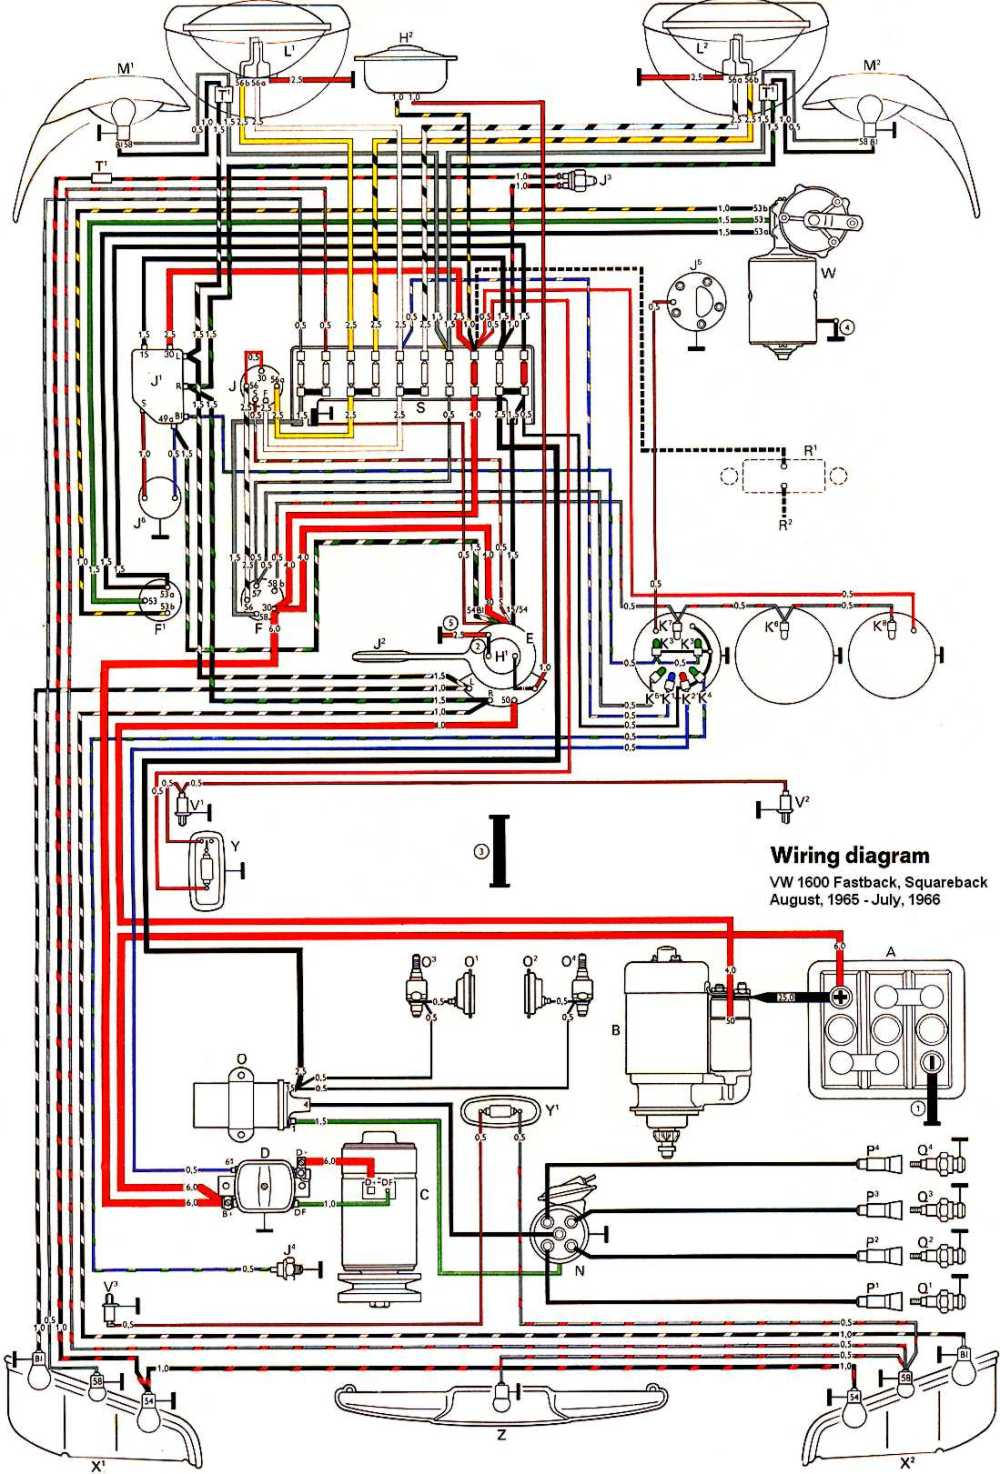 medium resolution of volkswagen 1600 wiring diagram wiring diagram pass vw 1600 coil wiring diagram vw 1600 wiring diagram